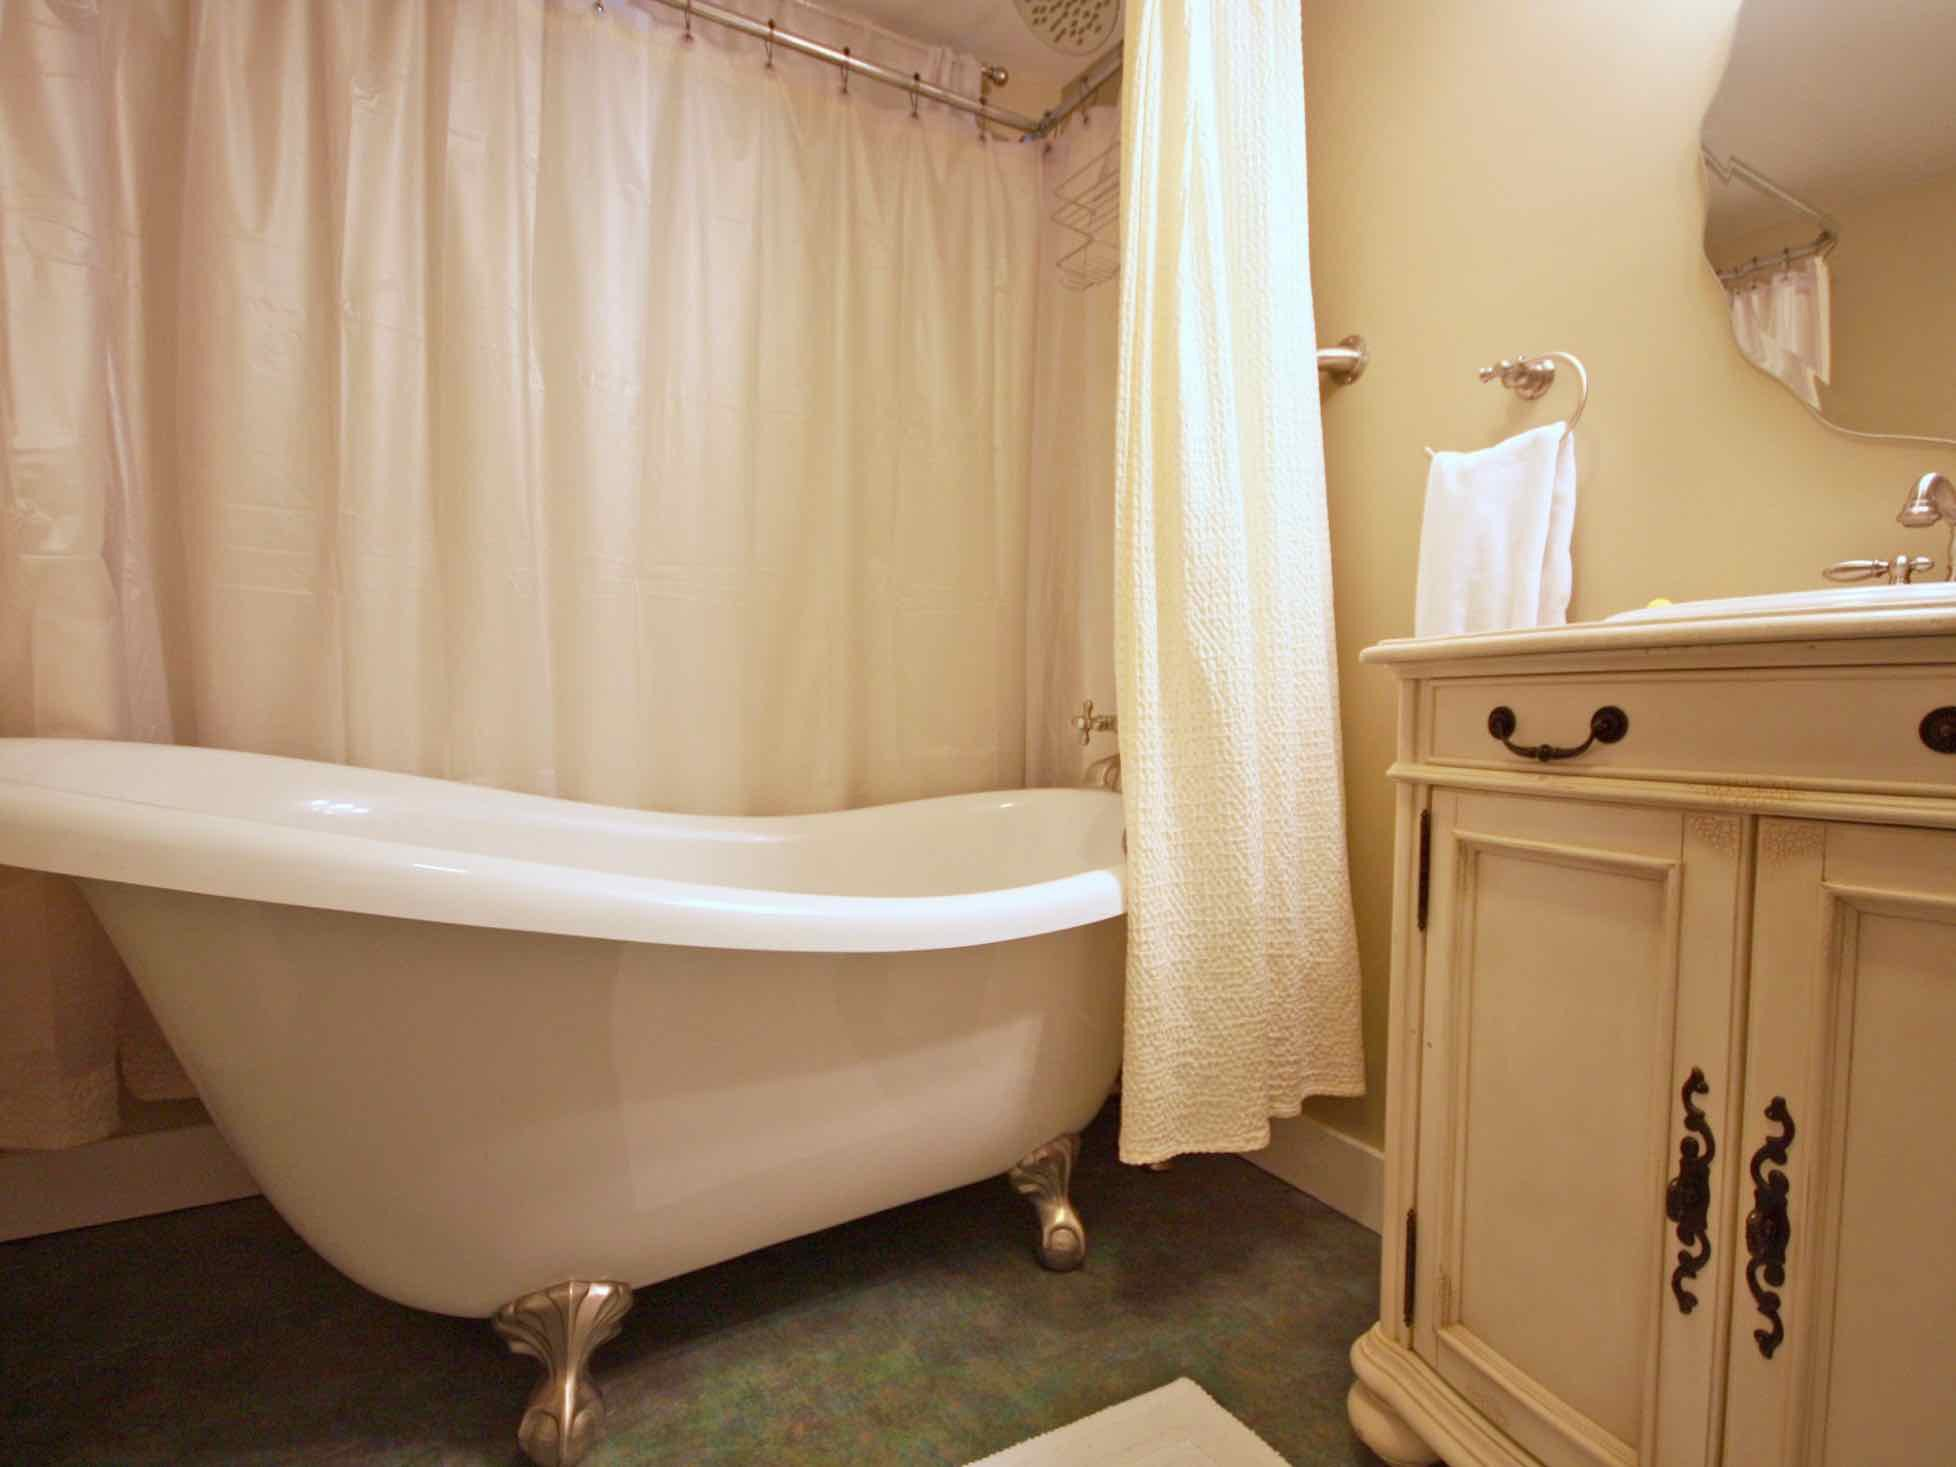 Acadia Suite bathroom with claw foot soaker tub